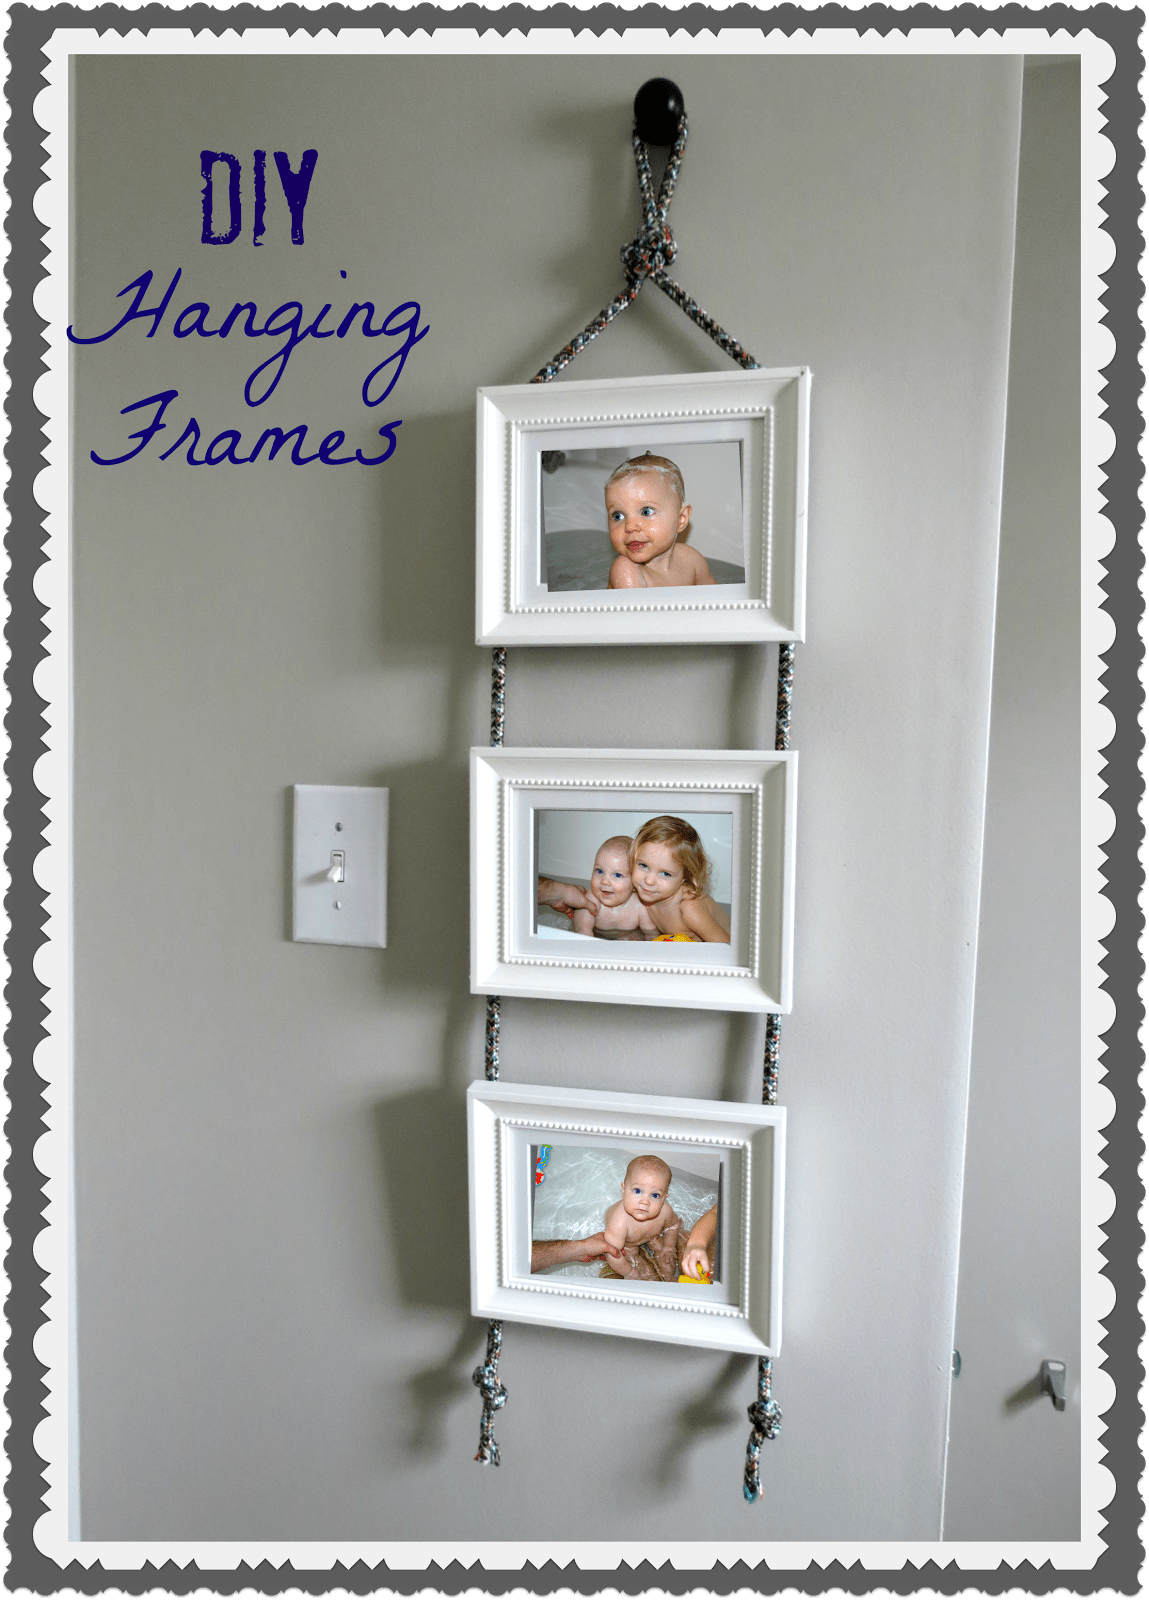 Diy Hanging Frames Tutorial Tatertots And Jello